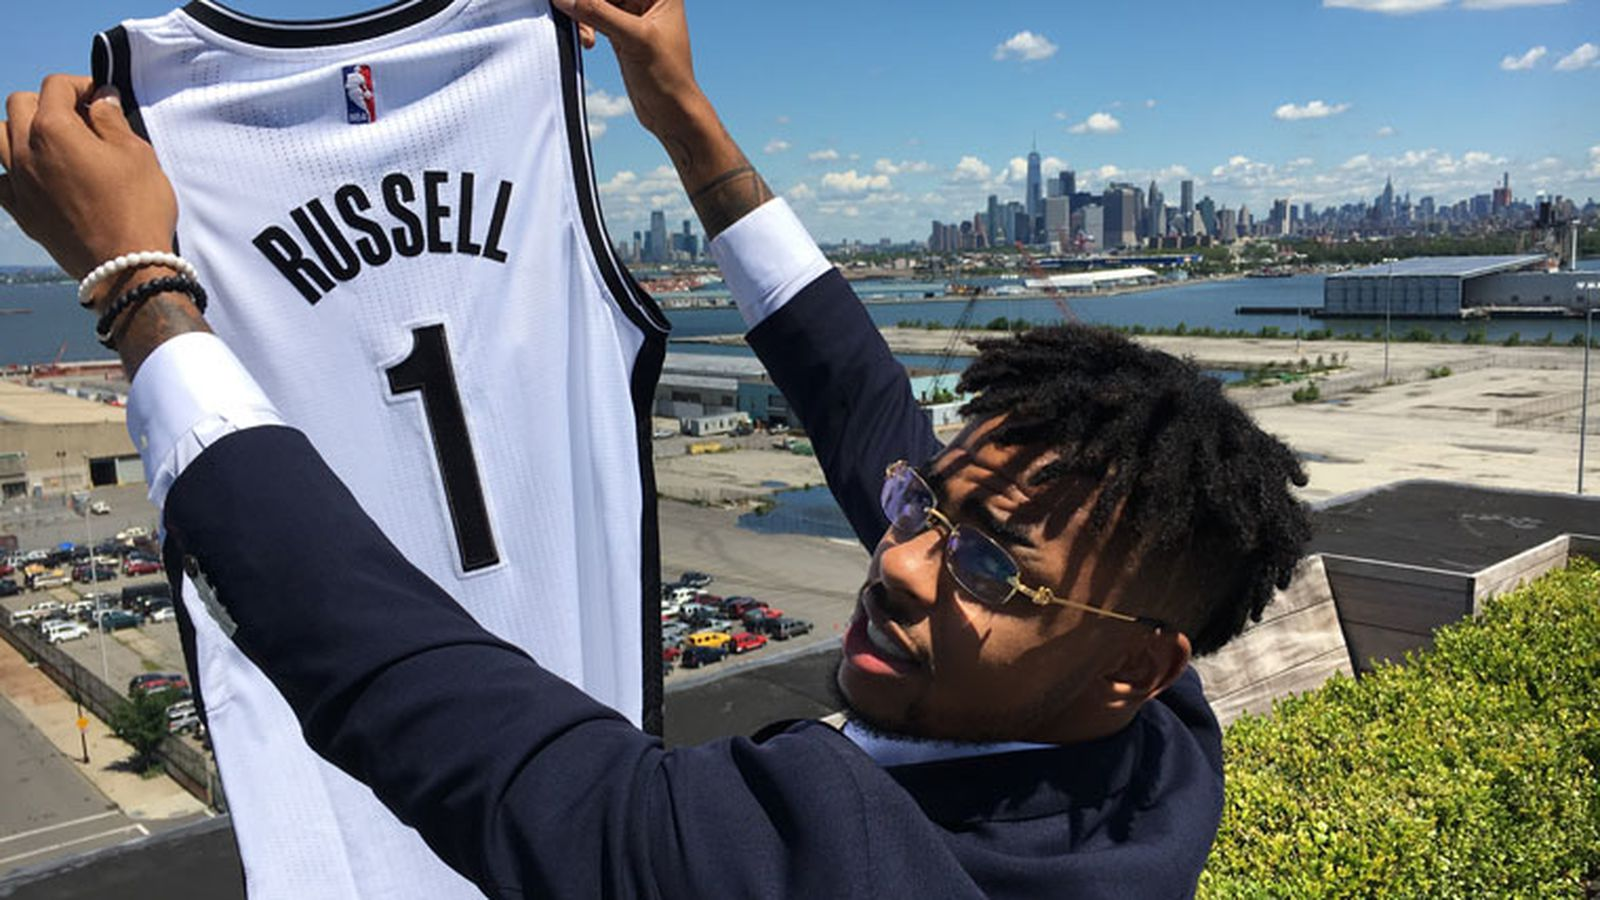 Russell_jersey_against_the_new_york_sky.0